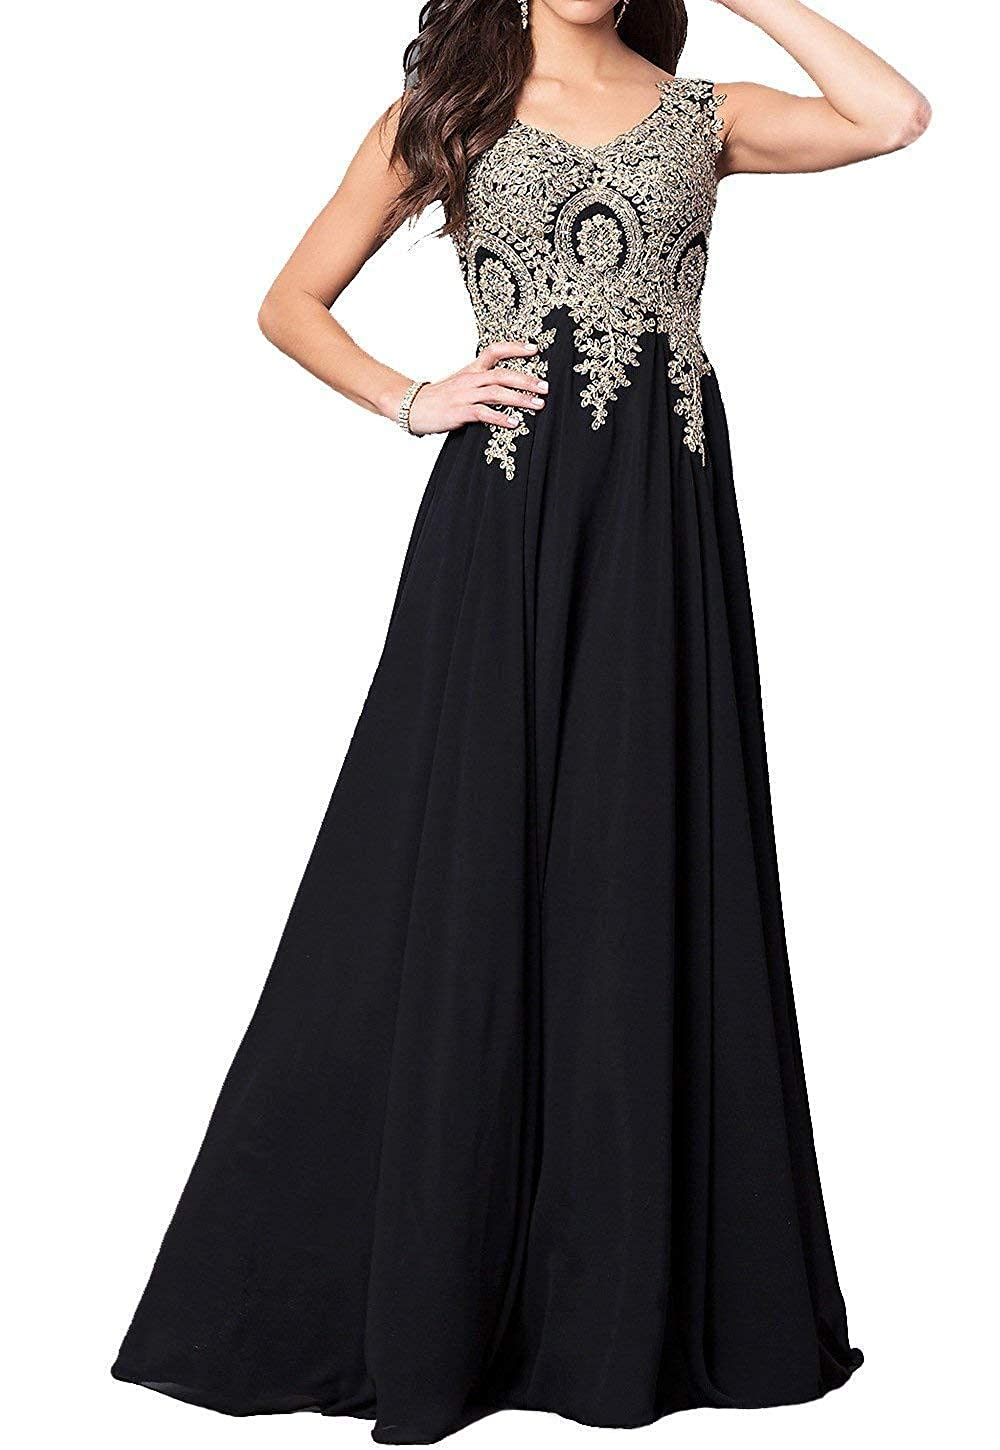 Black GMAR Beaded Appliques Prom Dresses A Line V Neck Open Back Long Formal Gowns